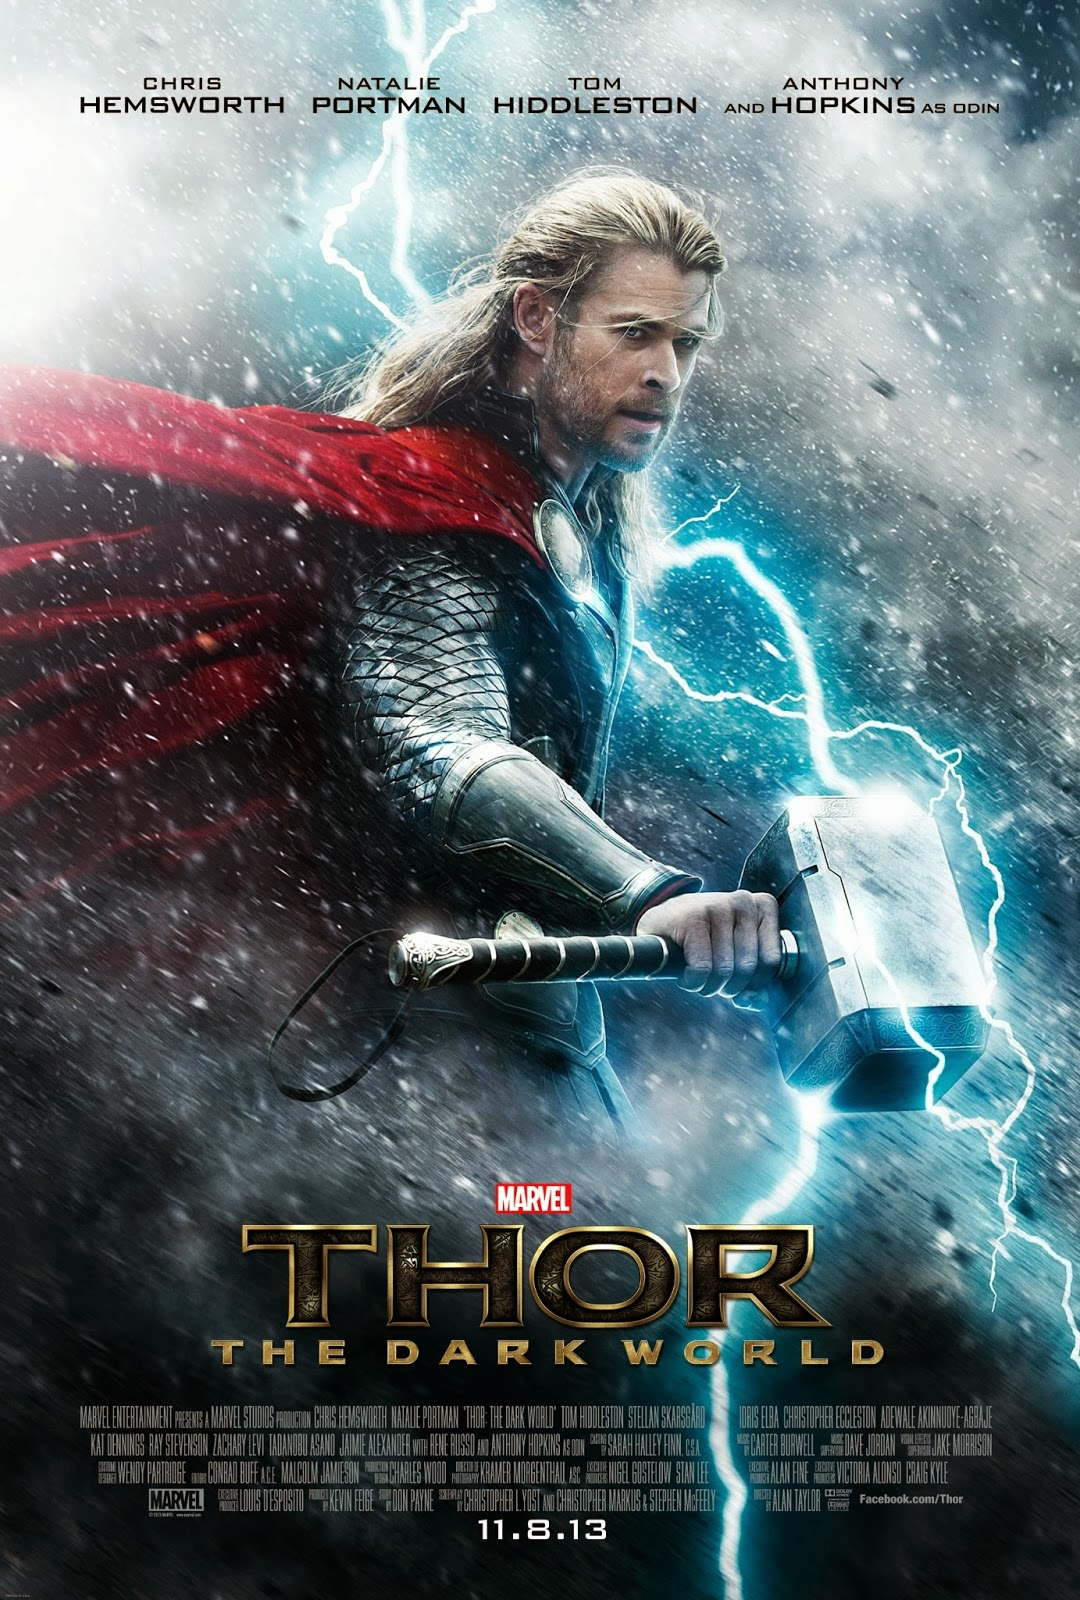 Thor The Dark World (2013)